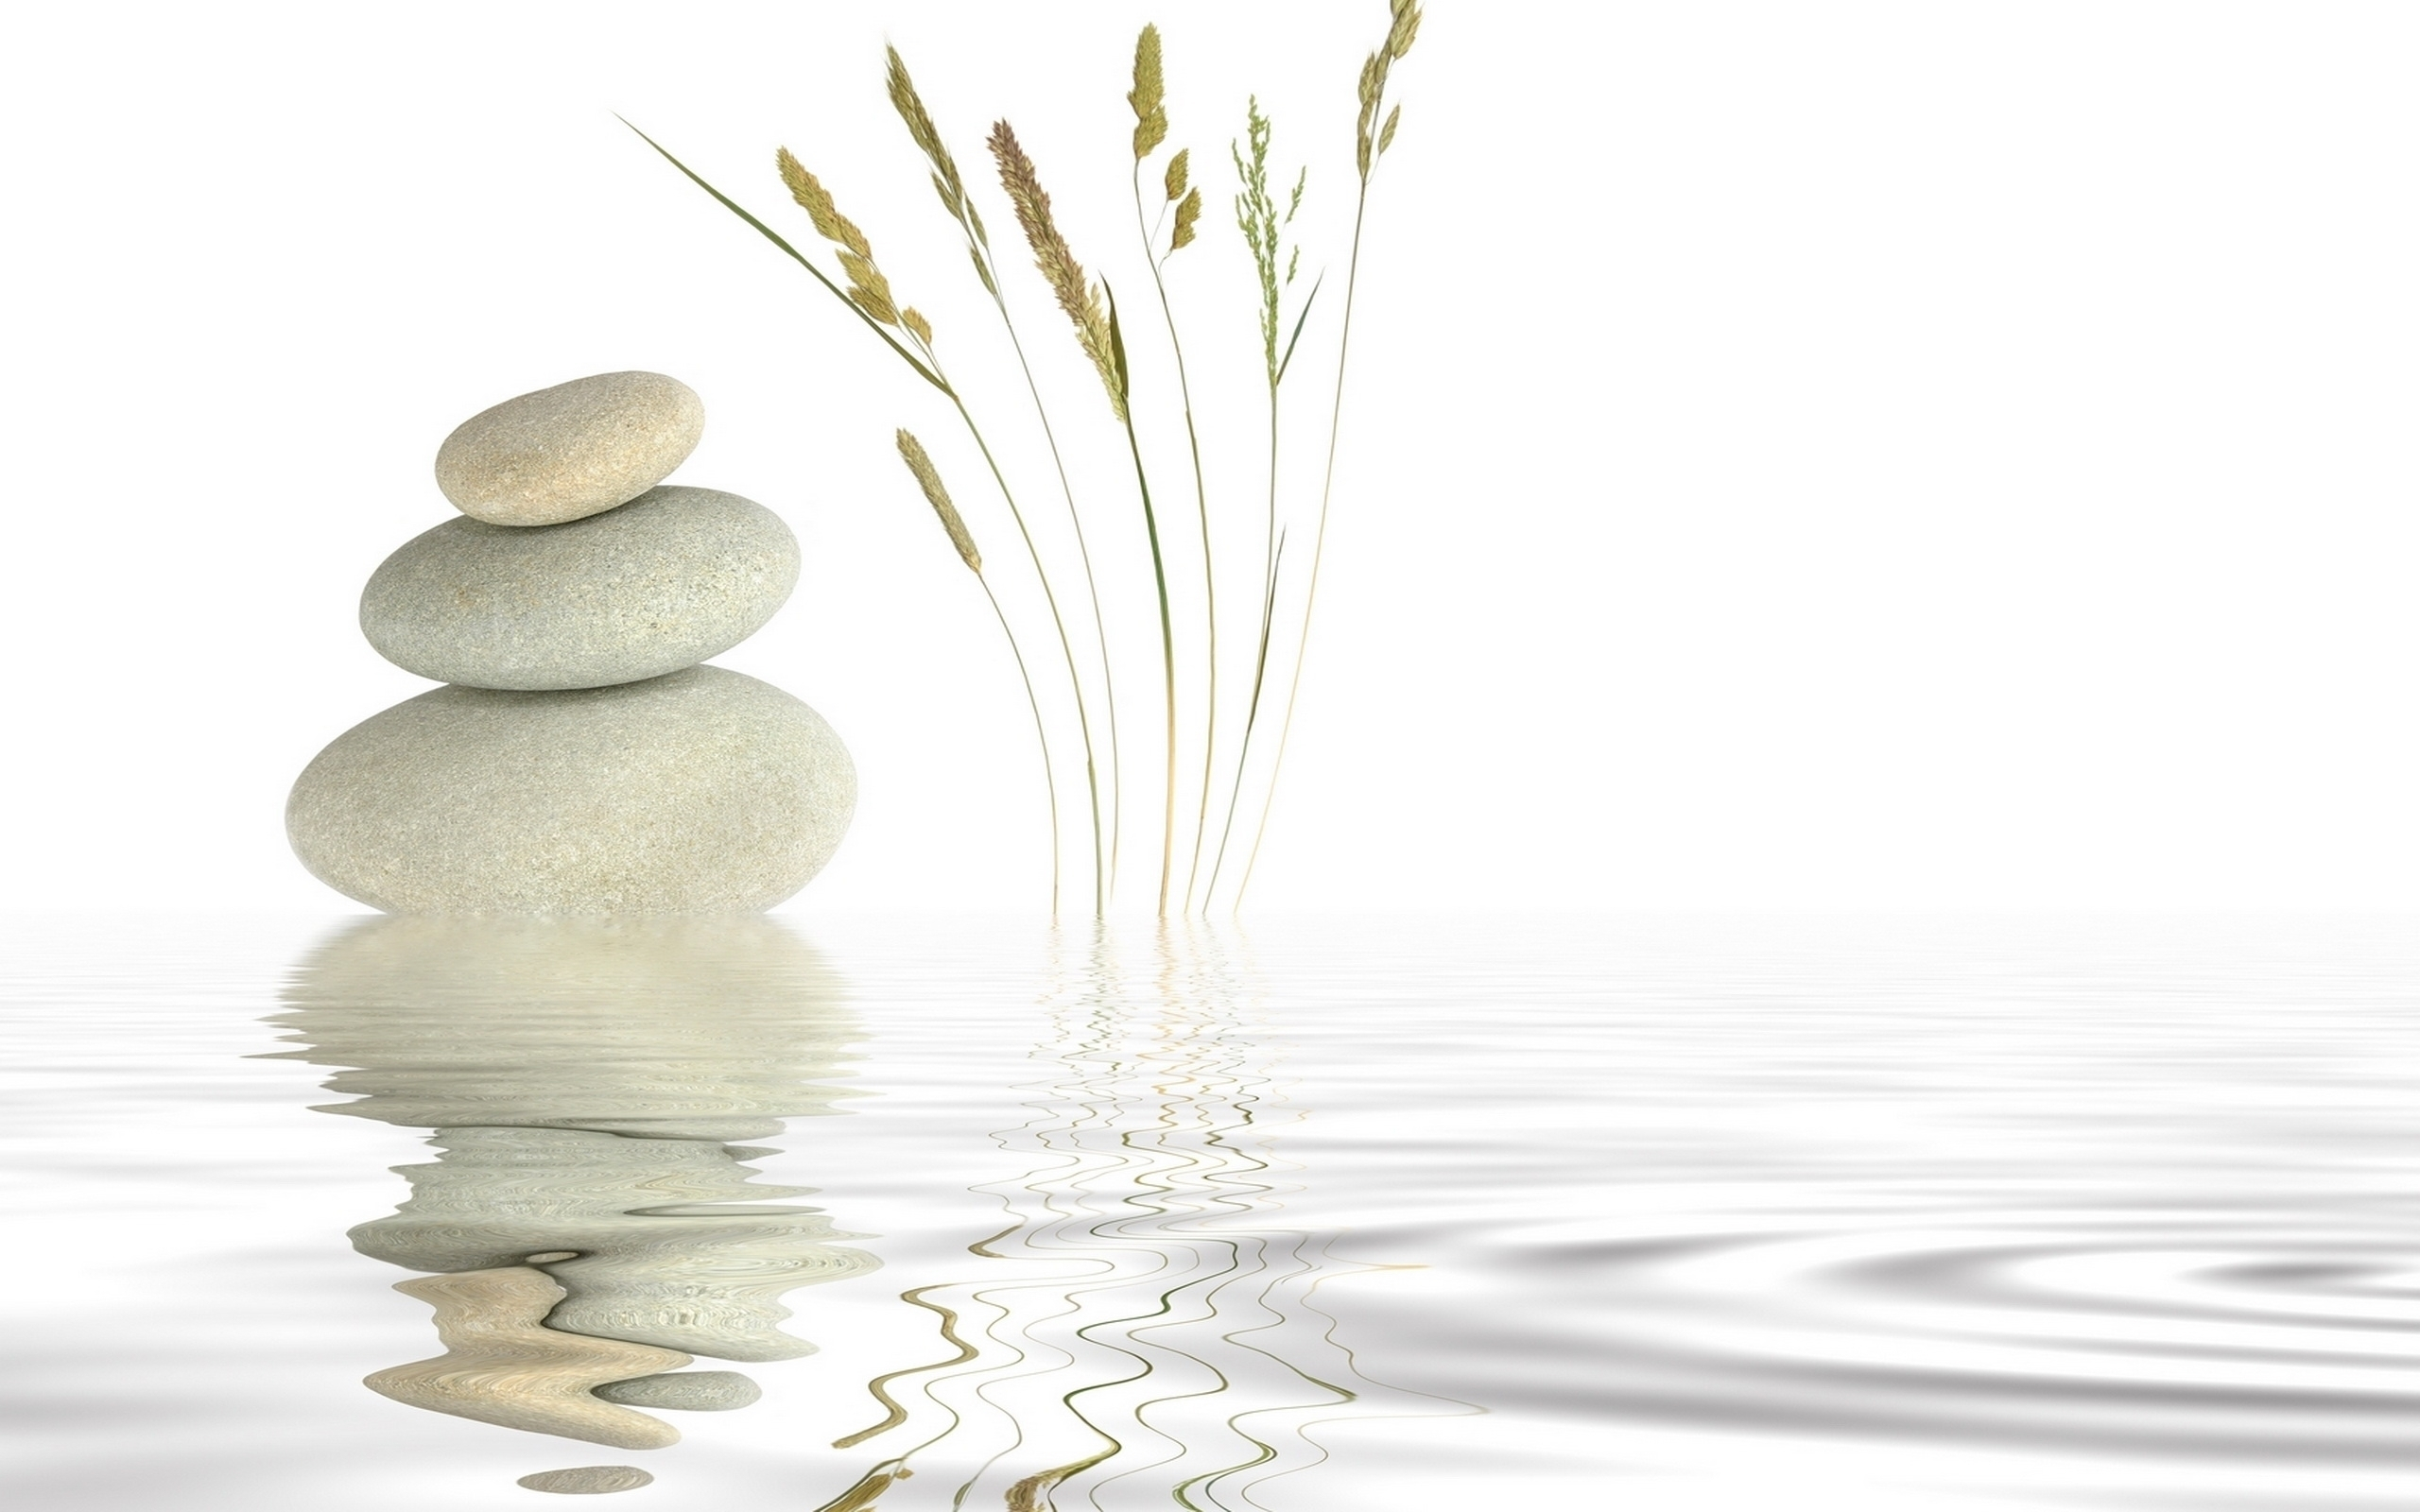 Zen Wallpaper 1920x1080: Zen Full HD Wallpaper And Background